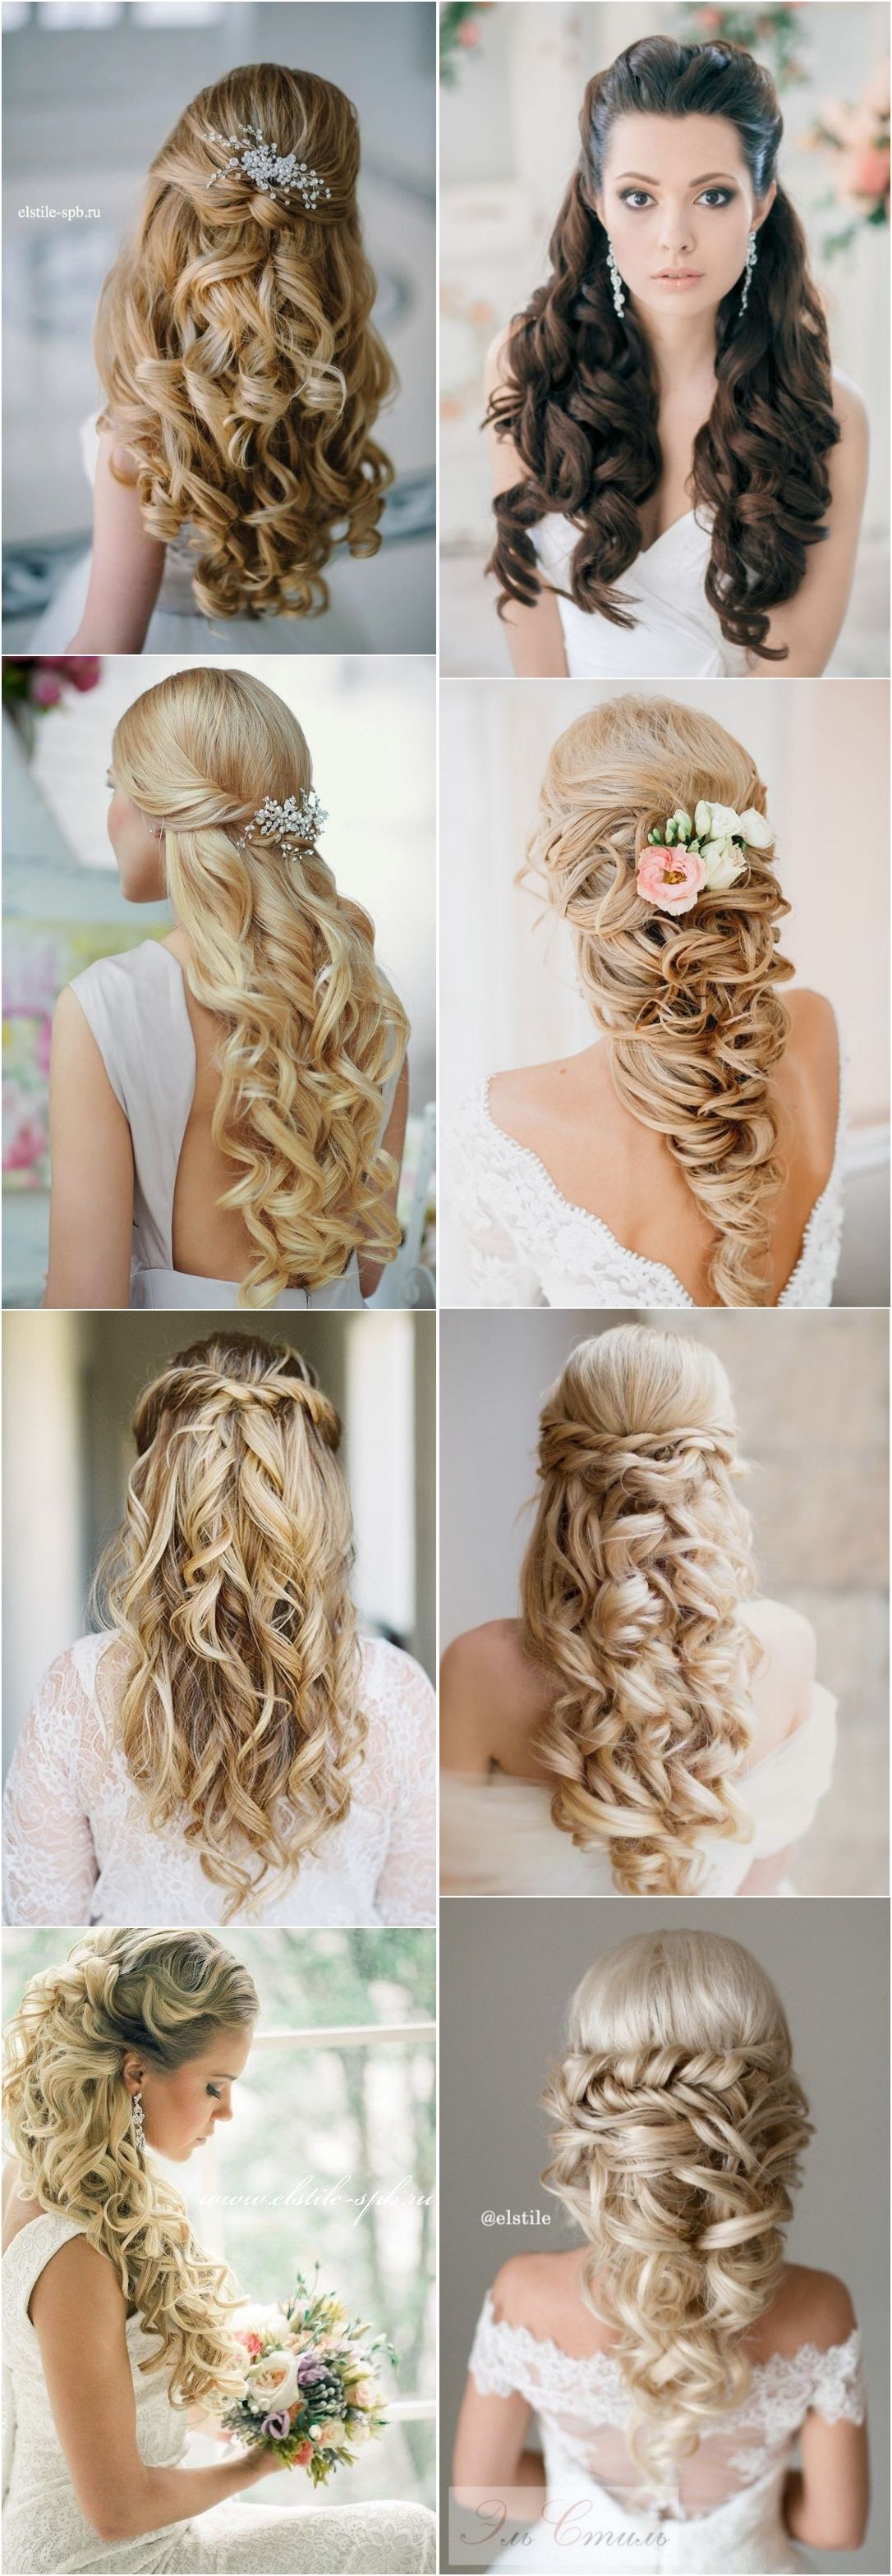 40 Stunning Half Up Half Down Wedding Hairstyles with Tutorial #hairtutorials